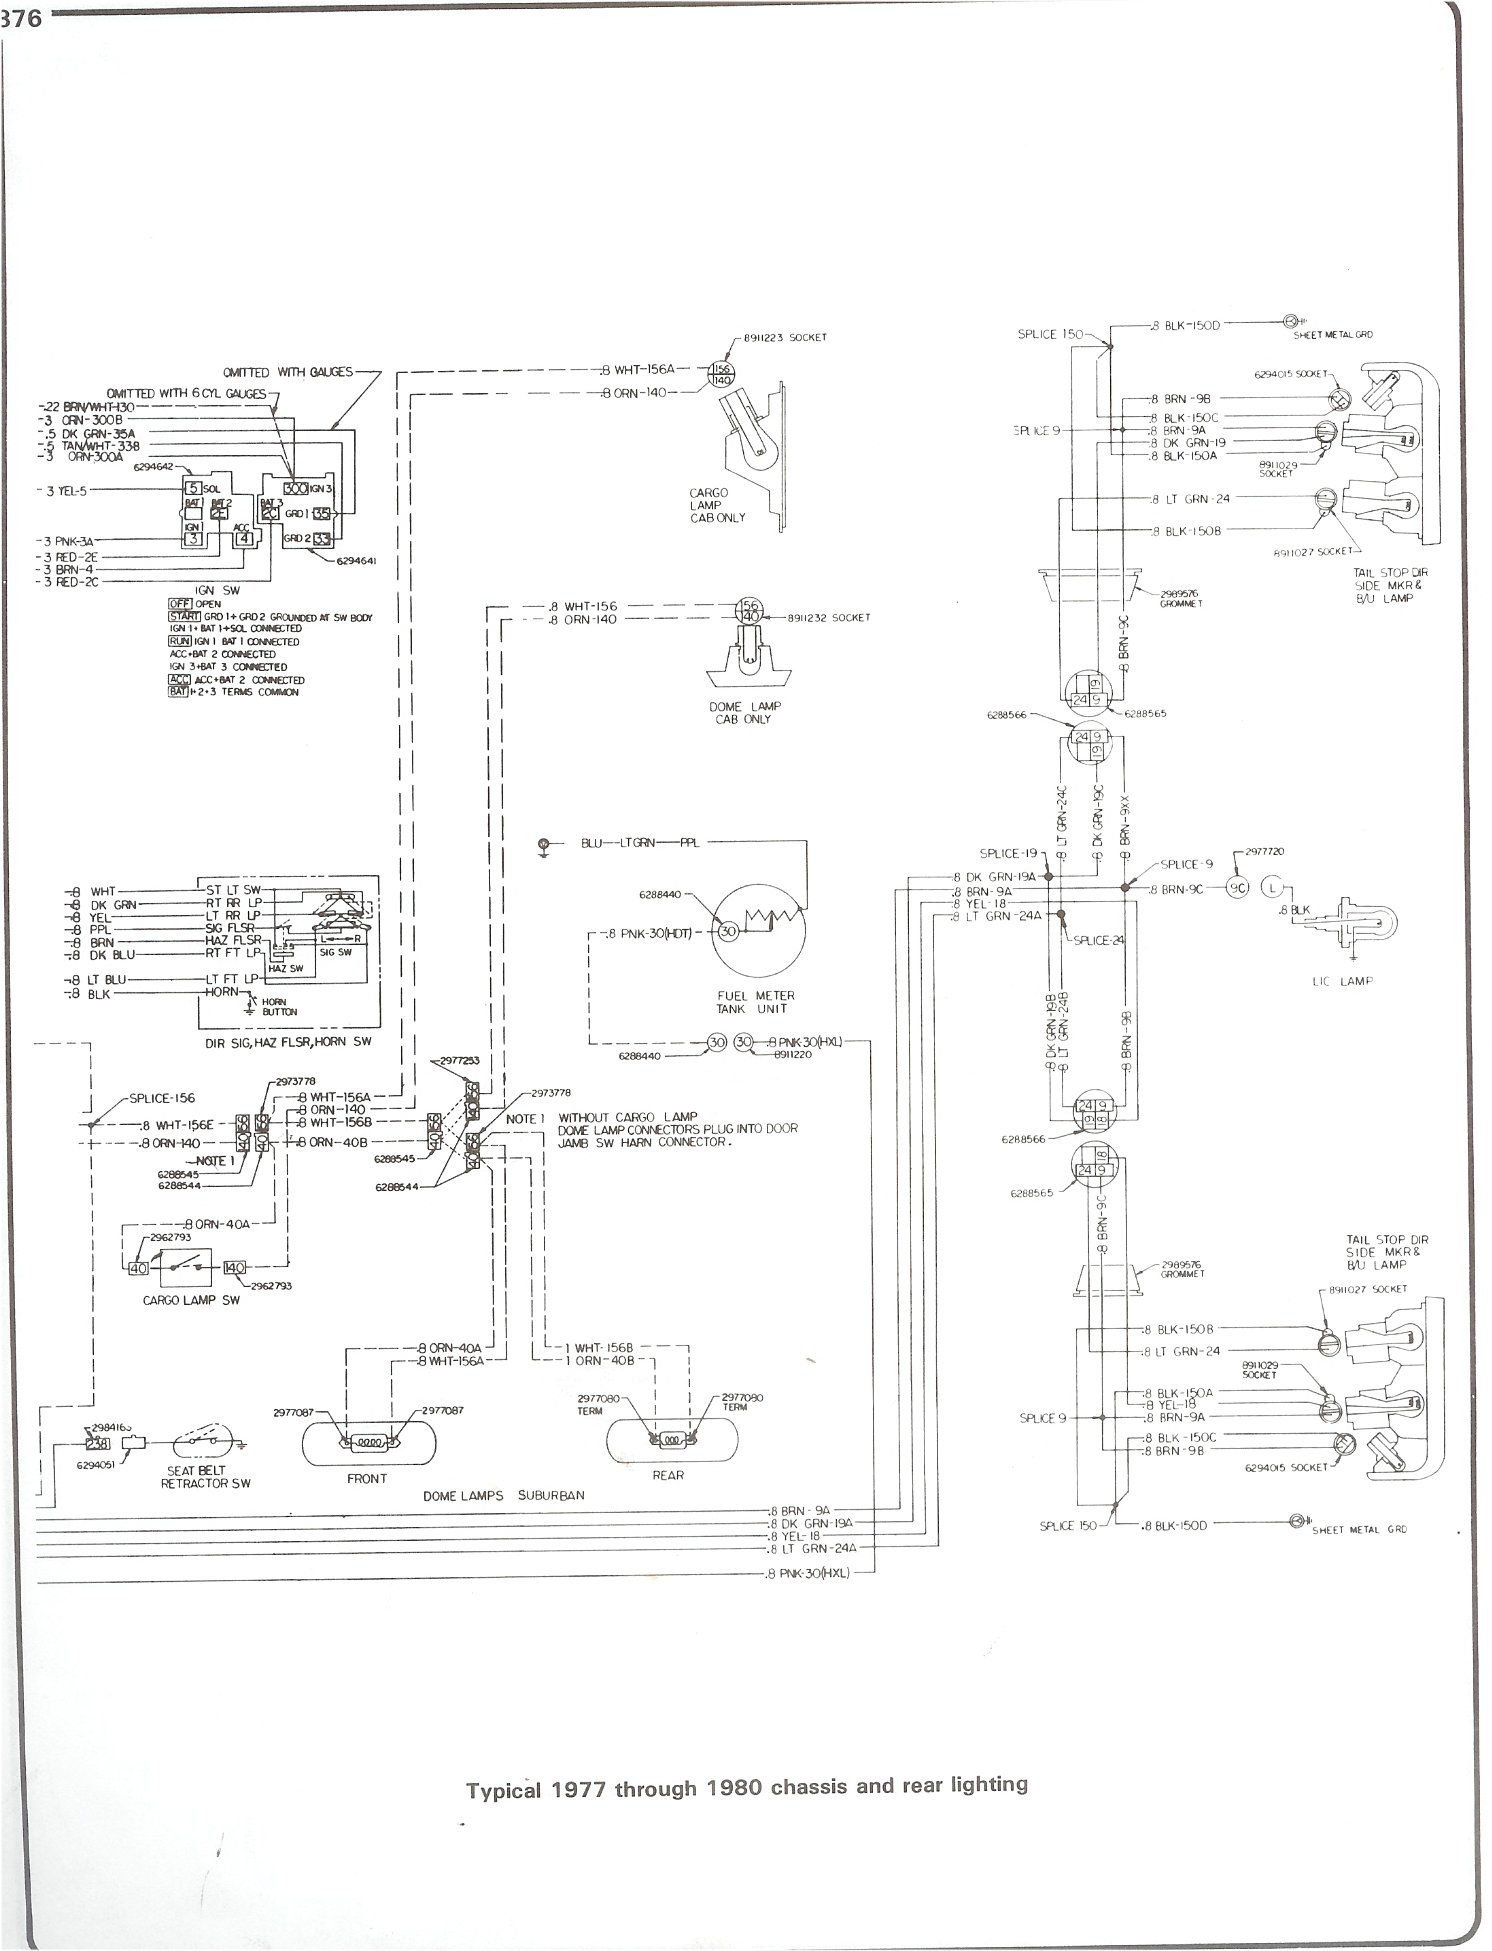 Complete 73 87 Wiring Diagrams S10 Wiper Diagram 77 80 Chassis And Rear Lighting